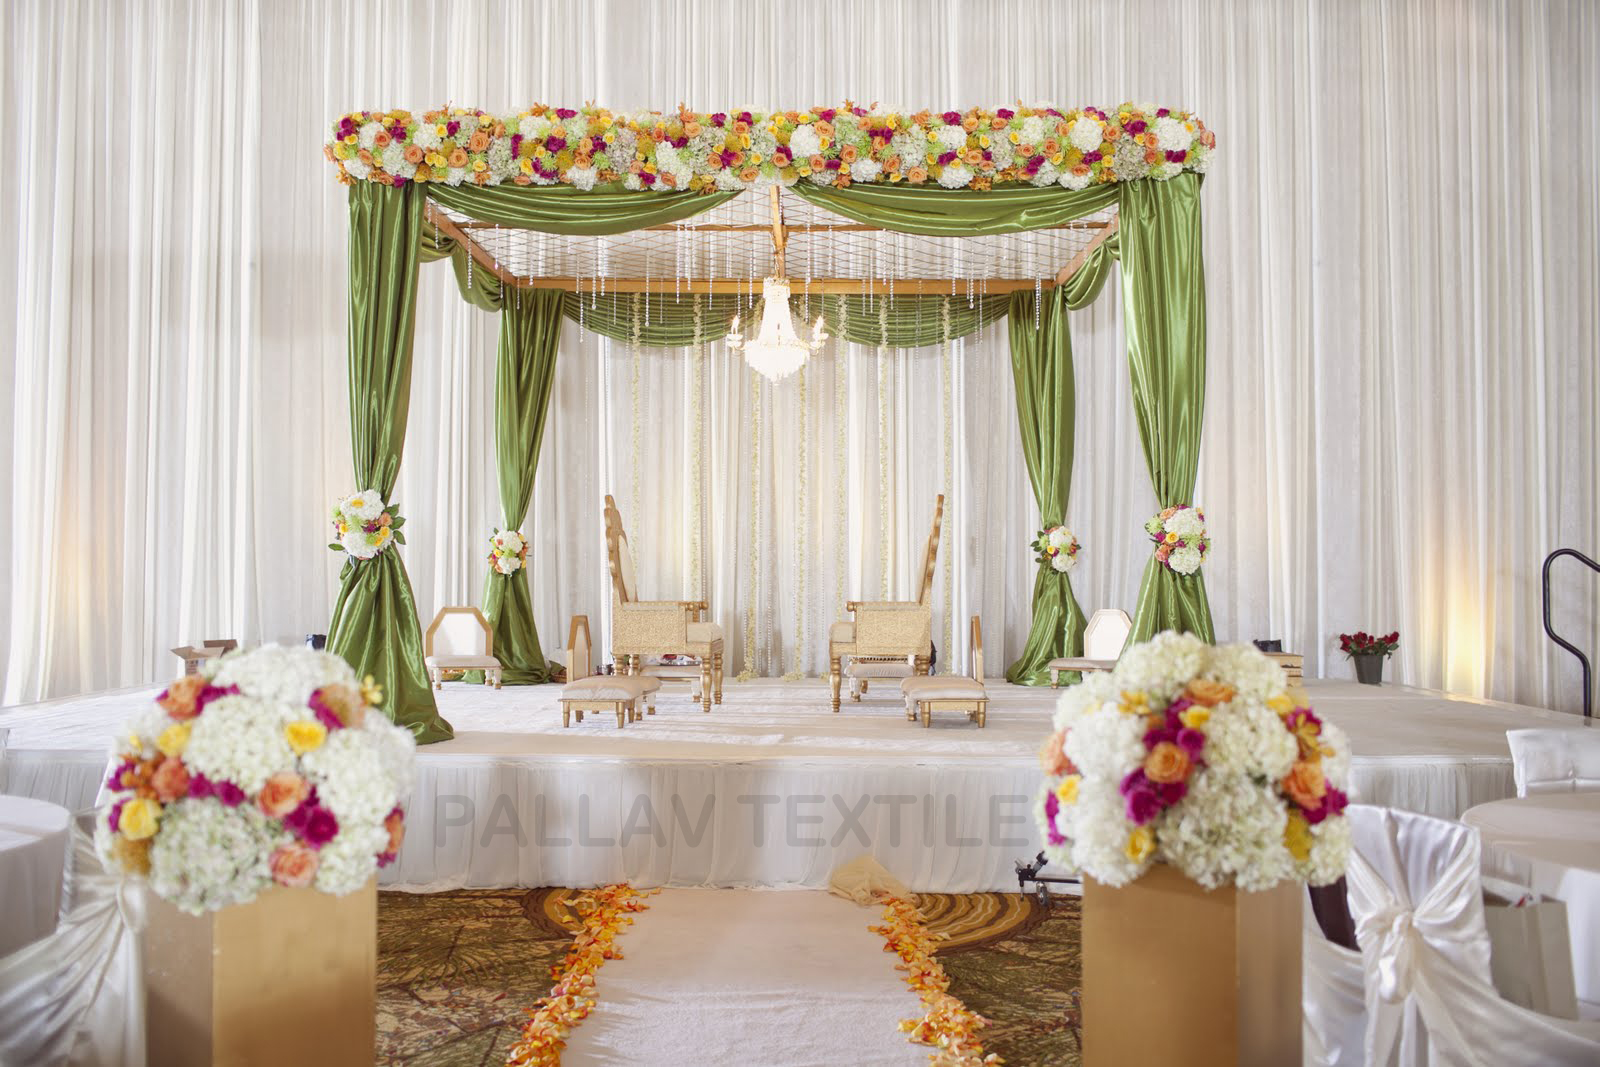 Indian wedding traditions modern inspiration party Simple flower decoration ideas